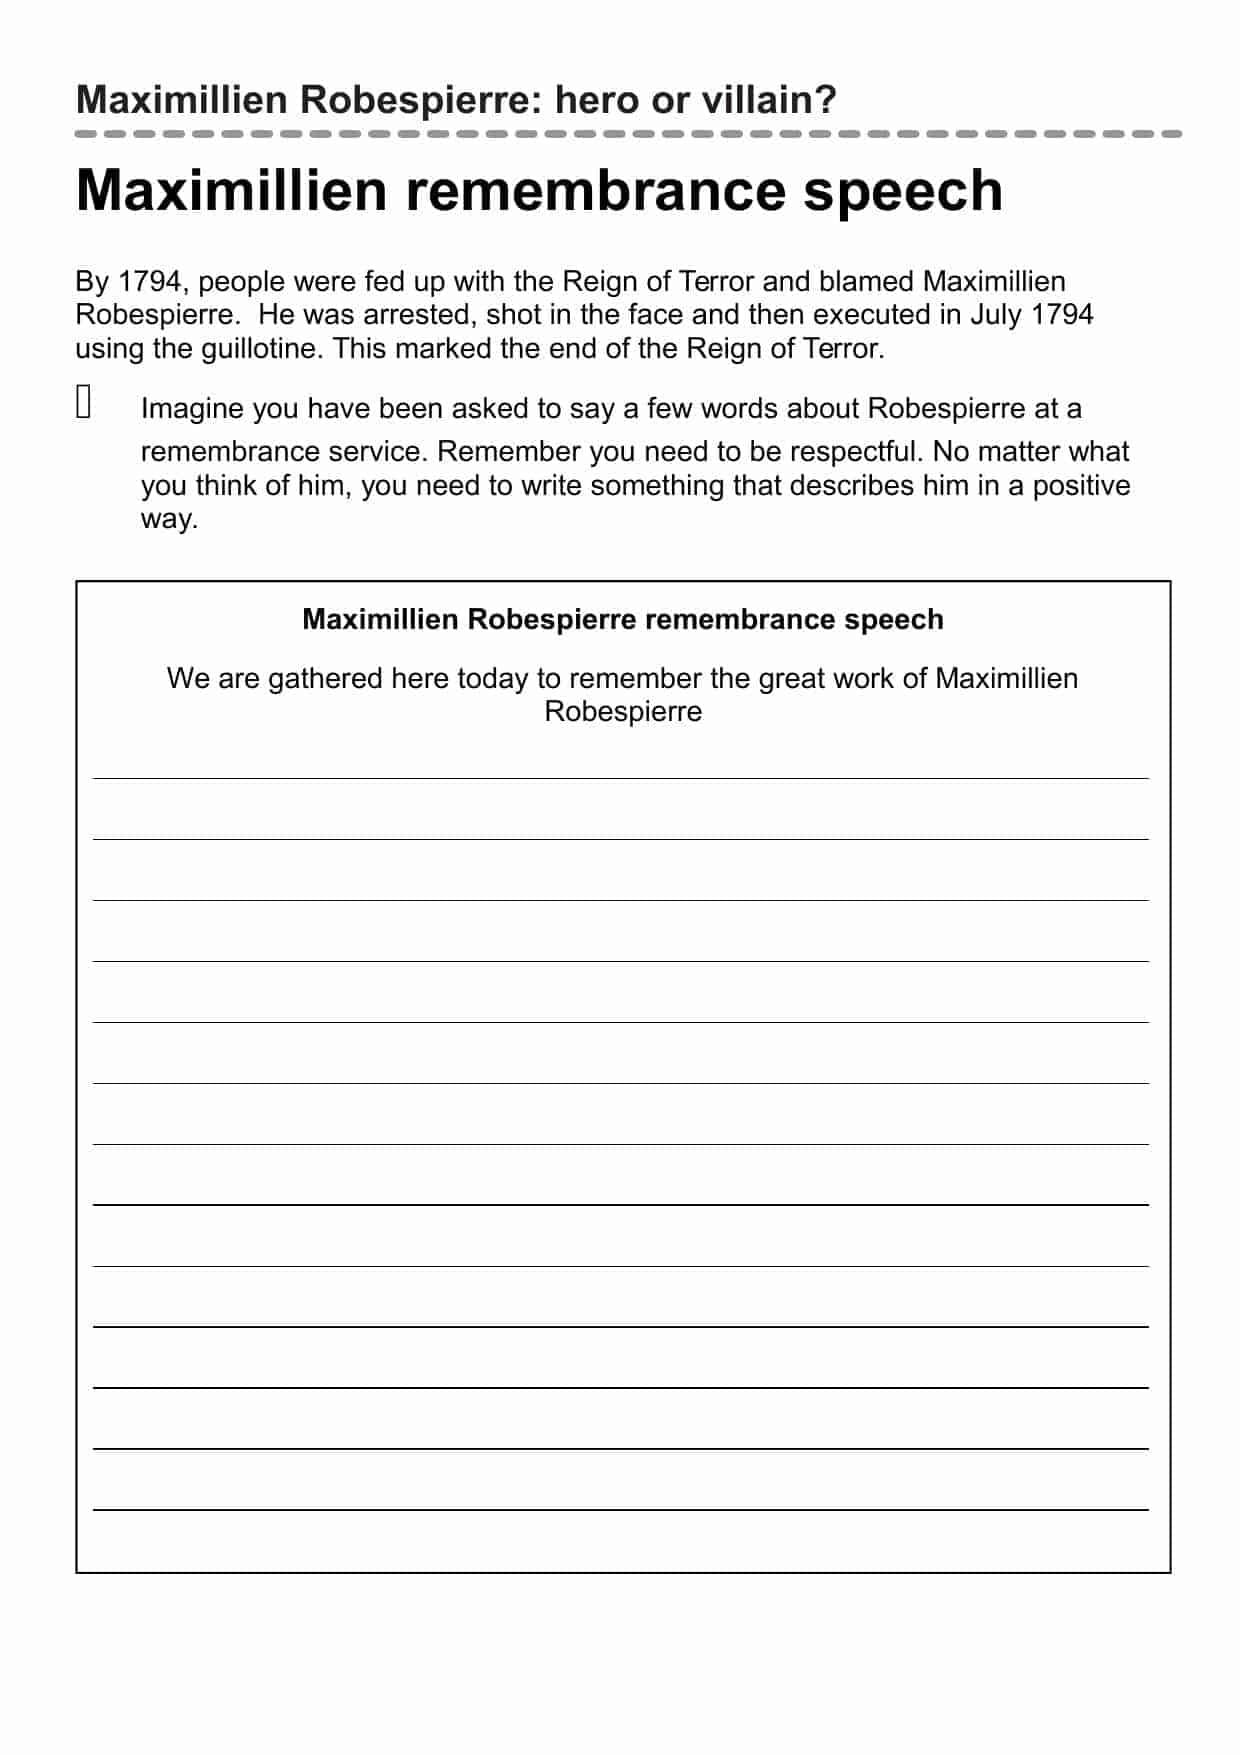 Maximillien Remembrance Speech Writing Frame Worksheet